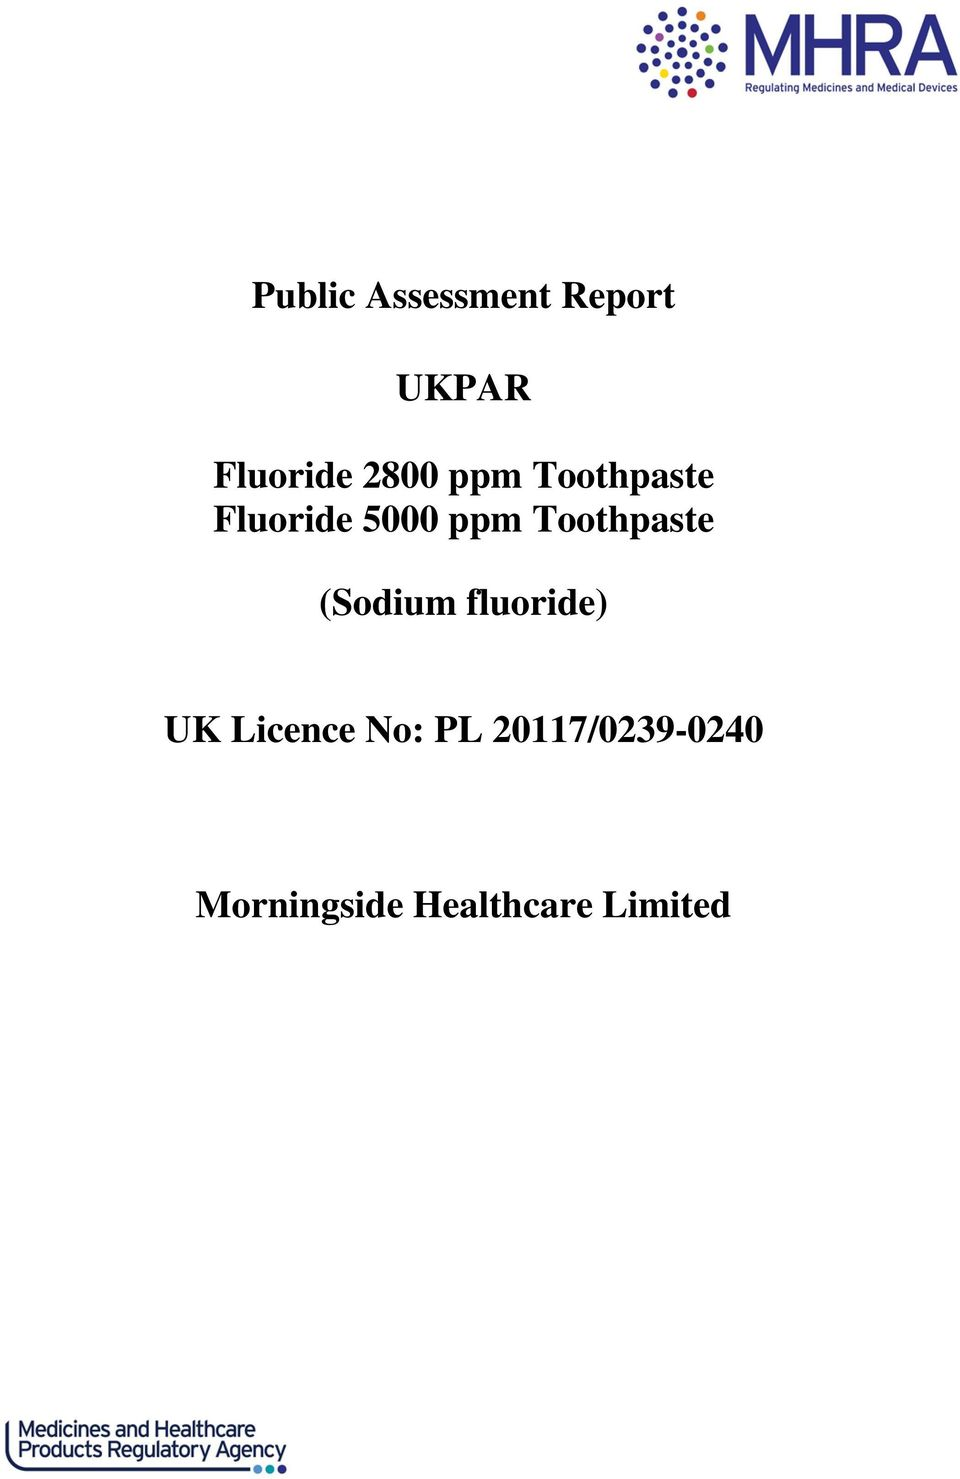 Toothpaste (Sodium fluoride) UK Licence No: